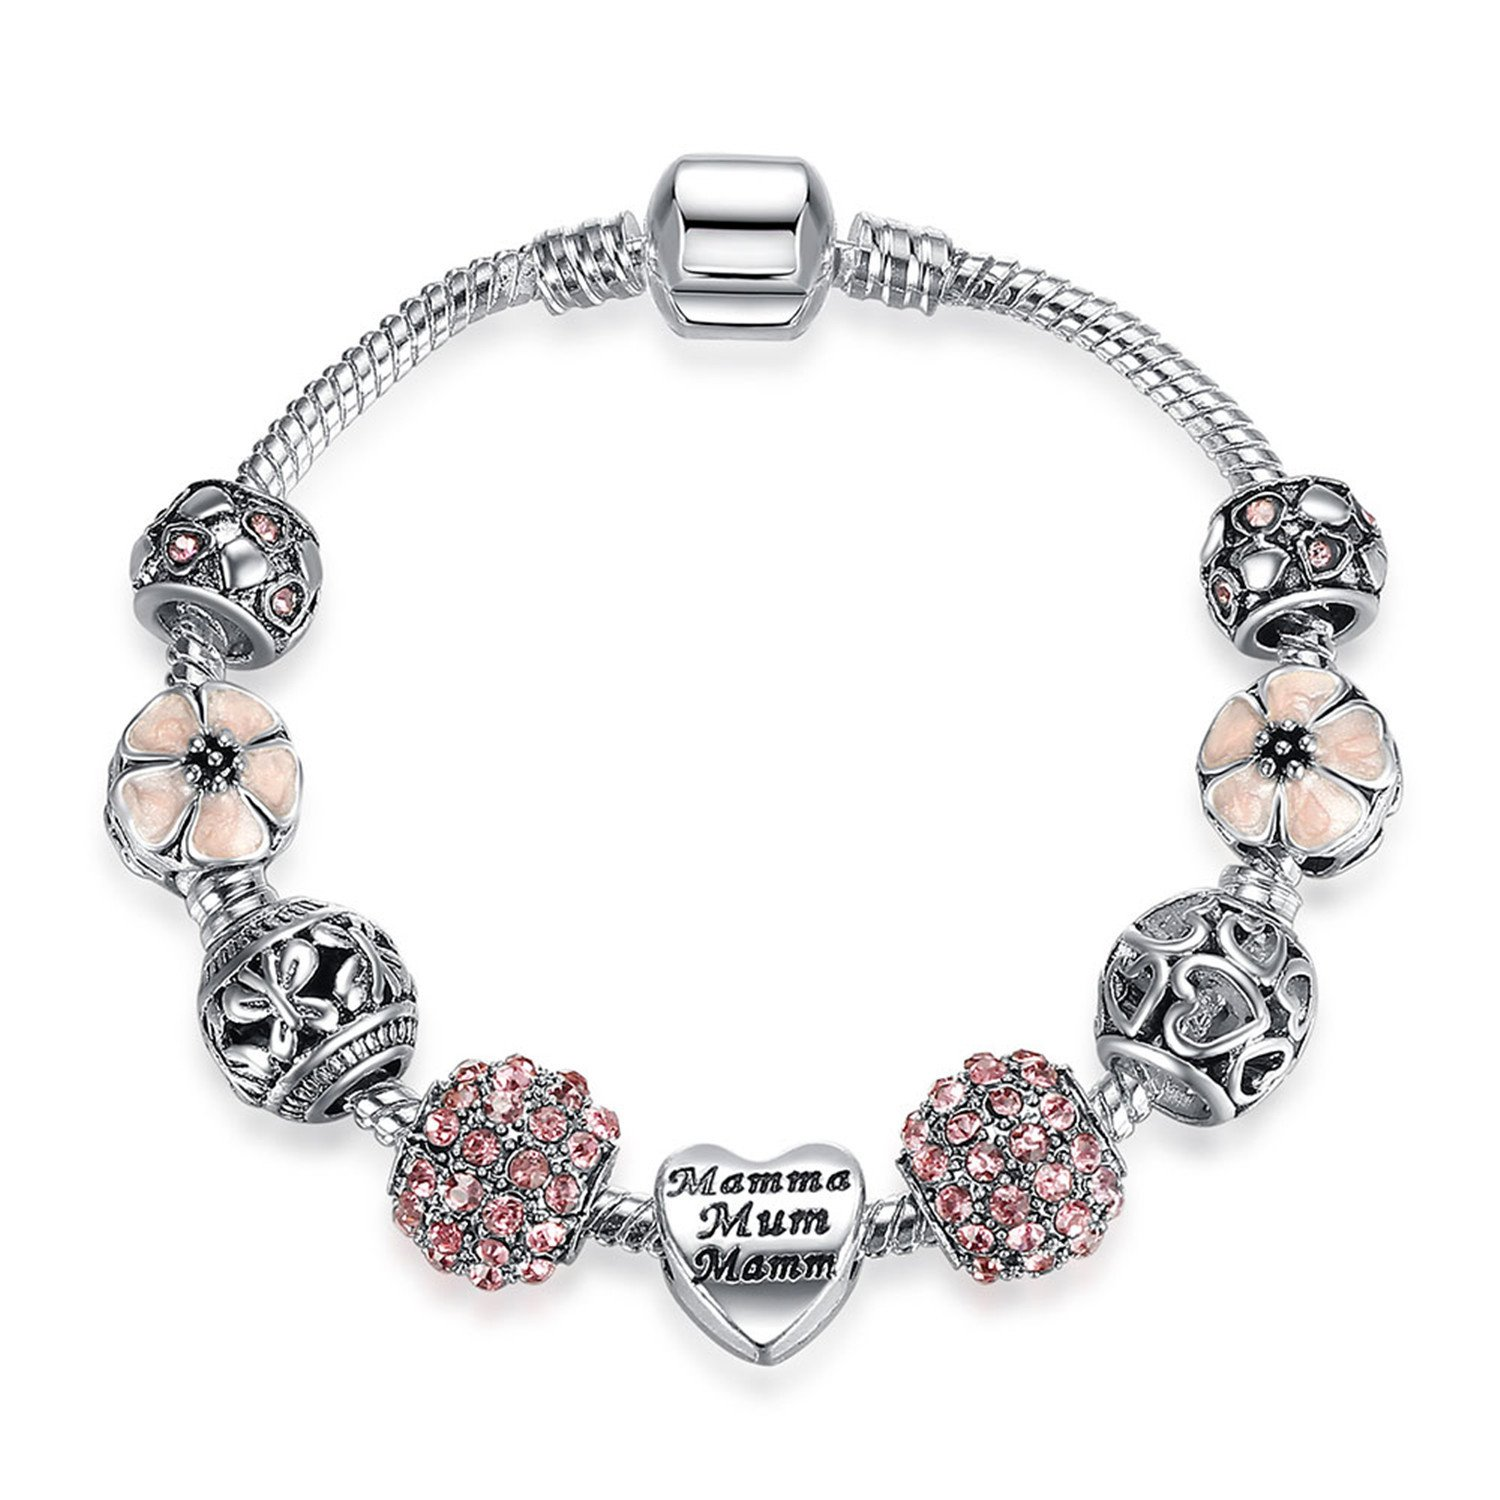 sensitives Original Silver 925 Crystal Four Leaf Clover Bracelet with Clear Murano Glass Beads Charm Bracelet Bangle for Women DIY Jewelry,PS3729,18cm